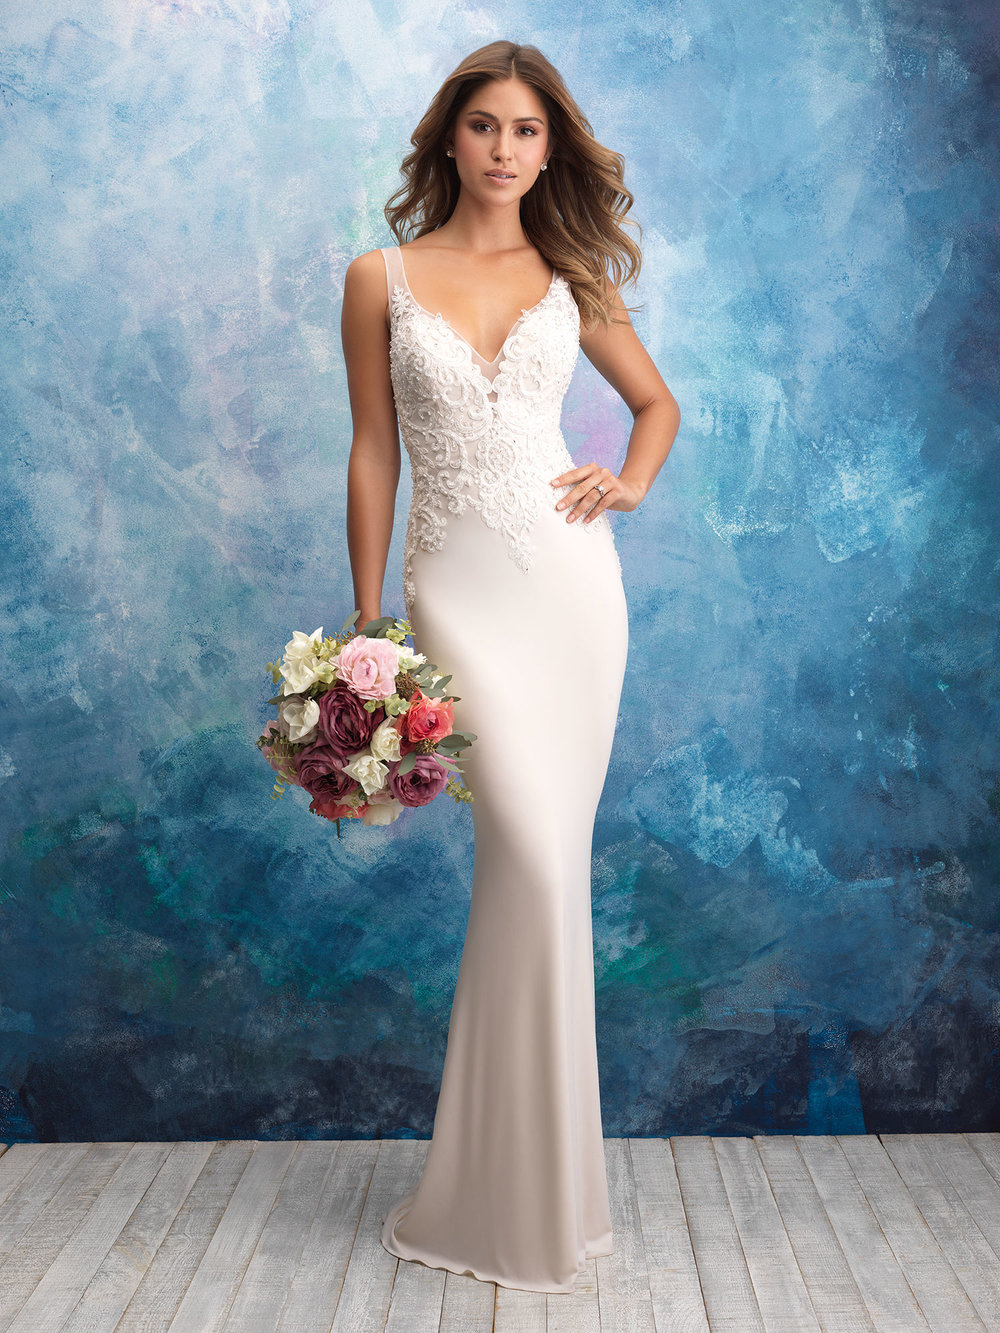 Style: 9554 - The highlight of this curve-hugging gown is found in the sheer sparkling panels along the back.